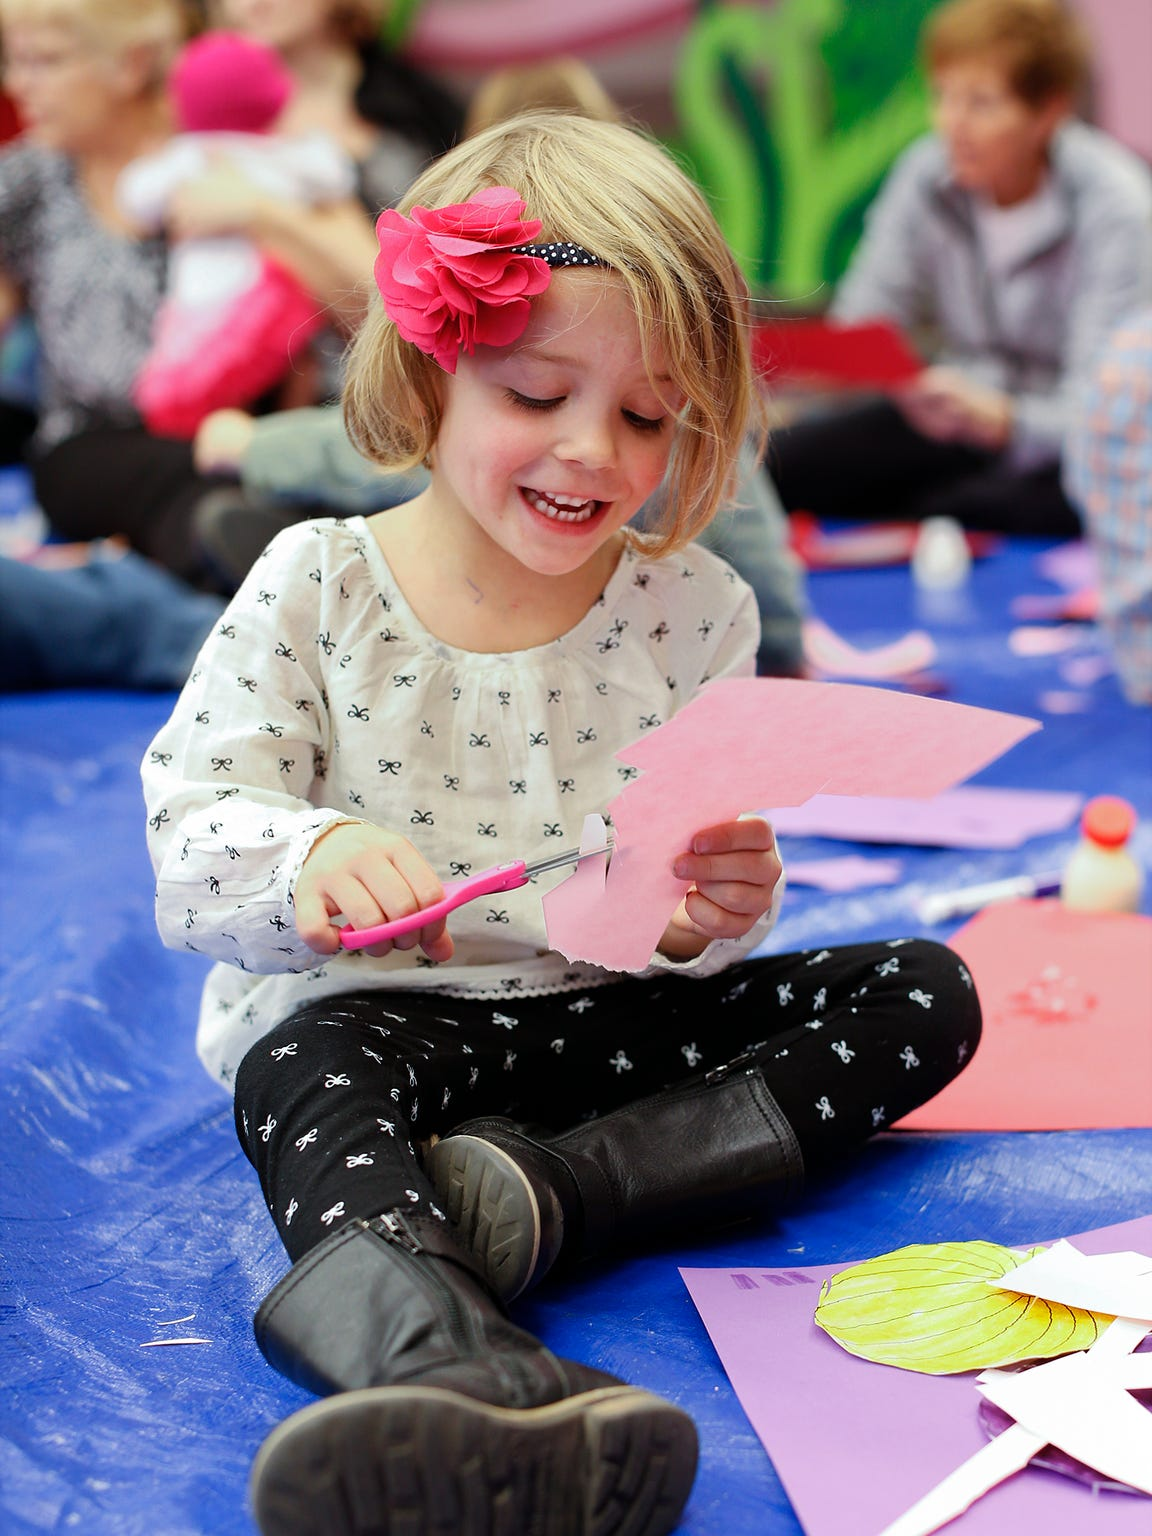 Kamri Neuman, 3, cuts paper into shapes as she works on a craft project in the Kid's Place at the Great Falls Public Library.